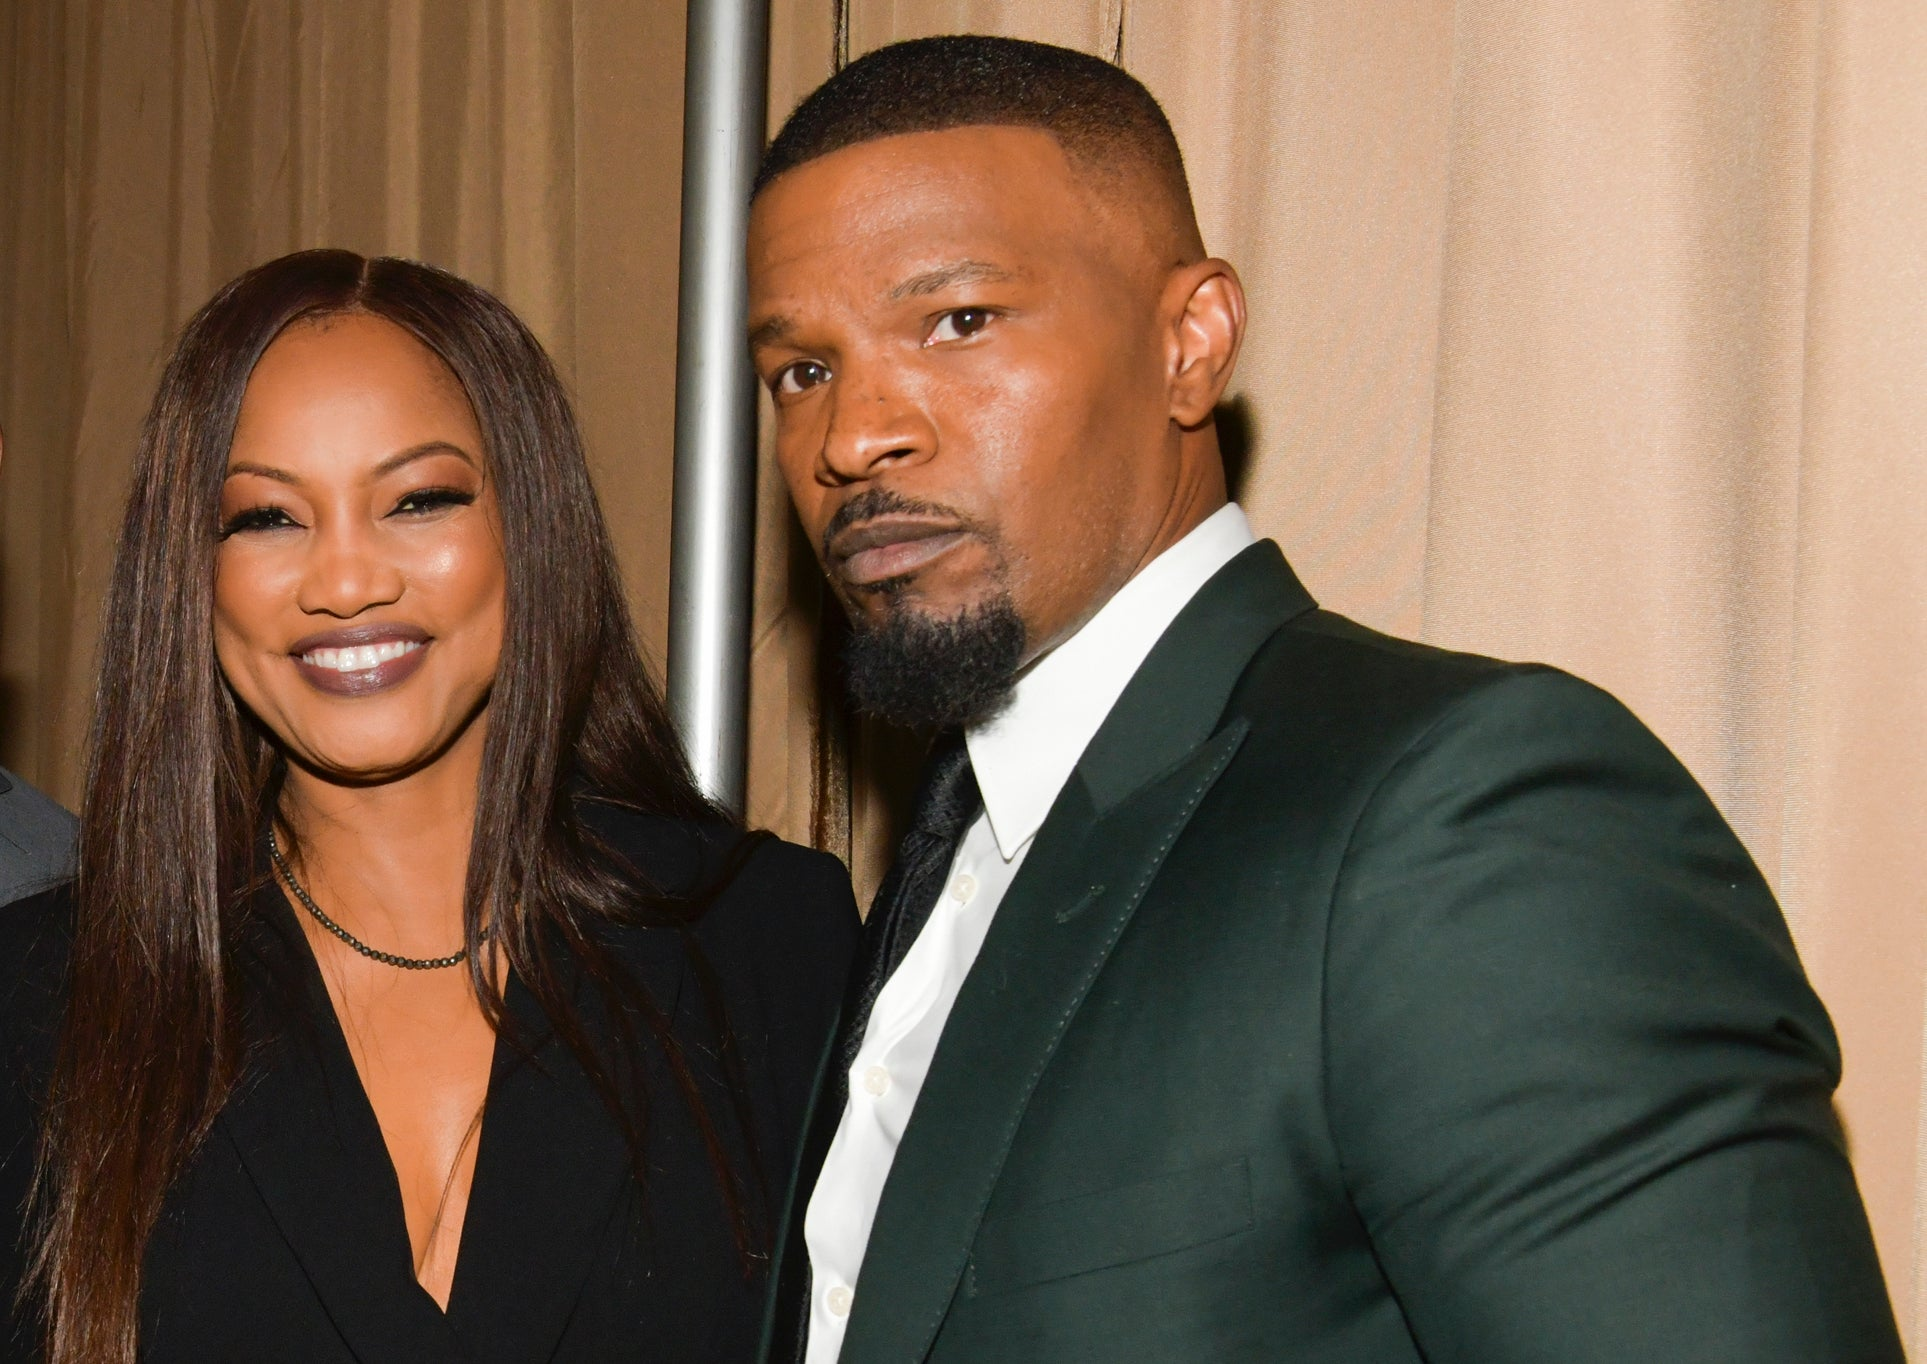 """jamie-foxx-flirts-with-former-on-screen-love-interest-garcelle-beauvais-says-they-shouldve-dated-in-real-life"""